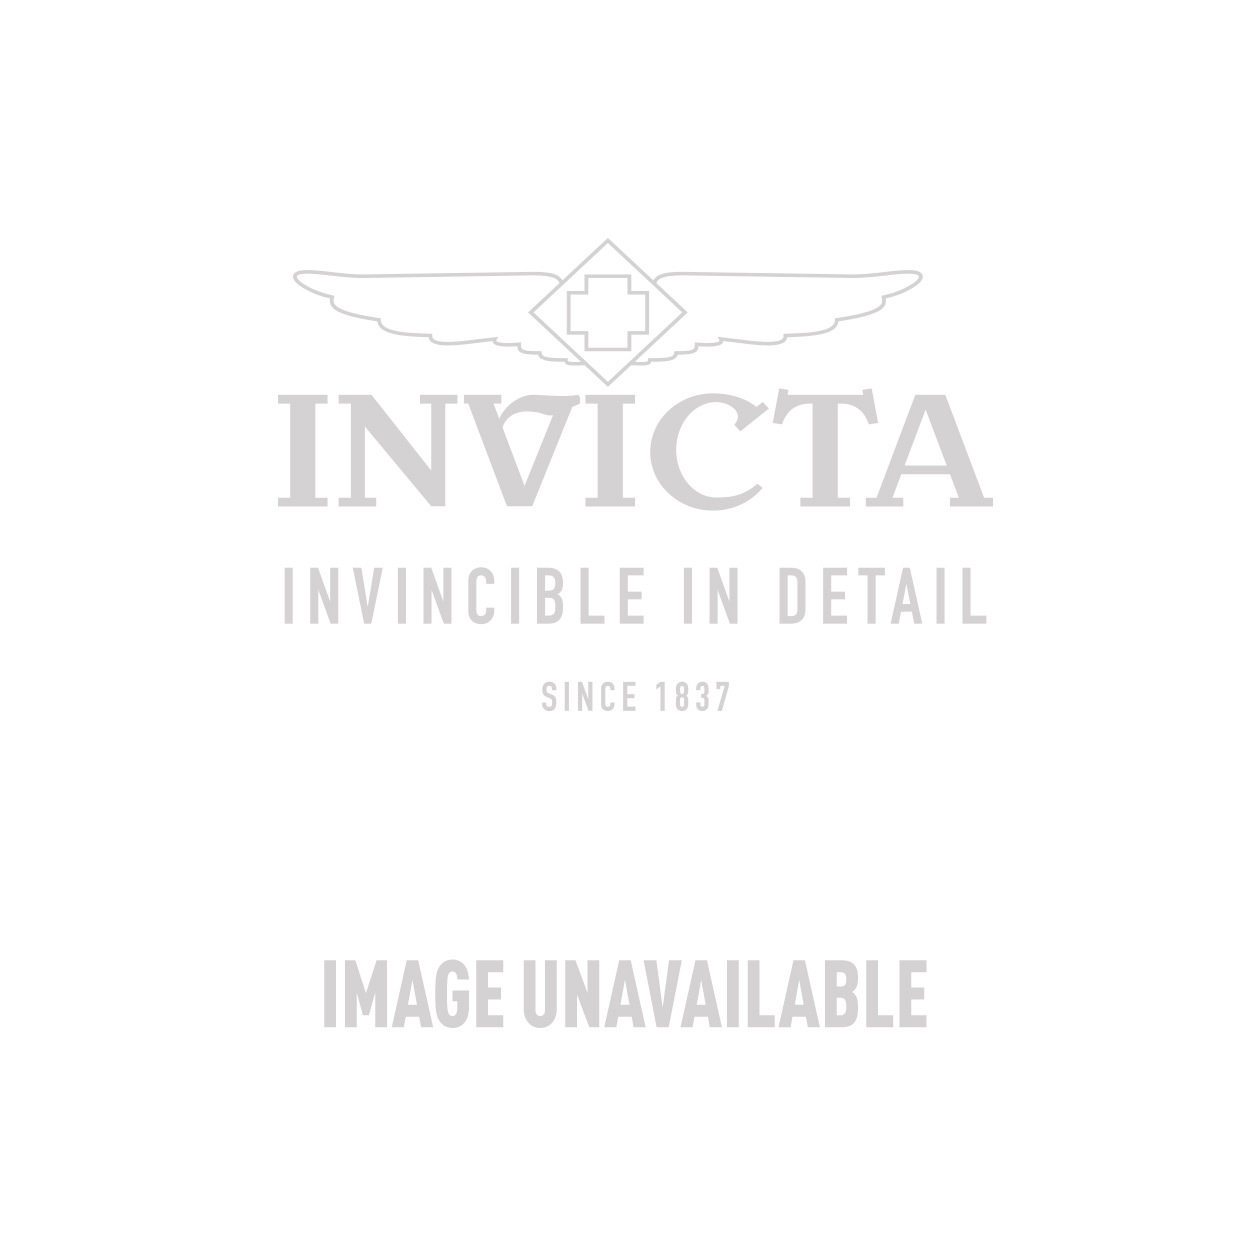 Invicta Corduba Quartz Watch - Stainless Steel case with Sesame tone Leather band - Model 18932